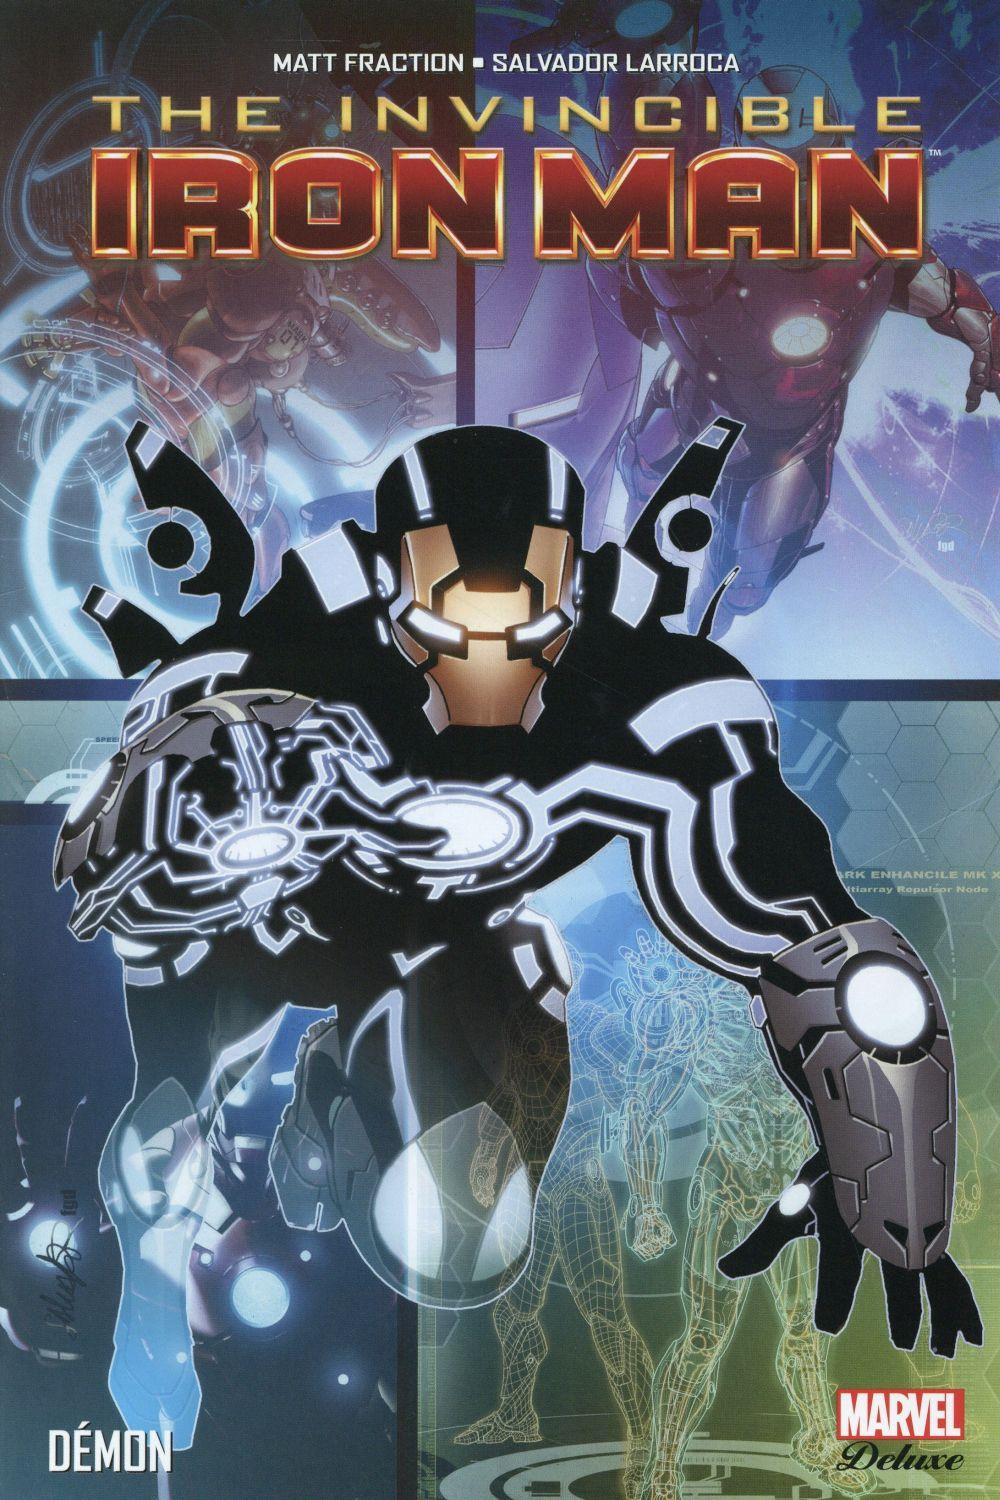 The invincible Iron Man T.5 ; démon  - Matt Fraction  - Salvador Larroca